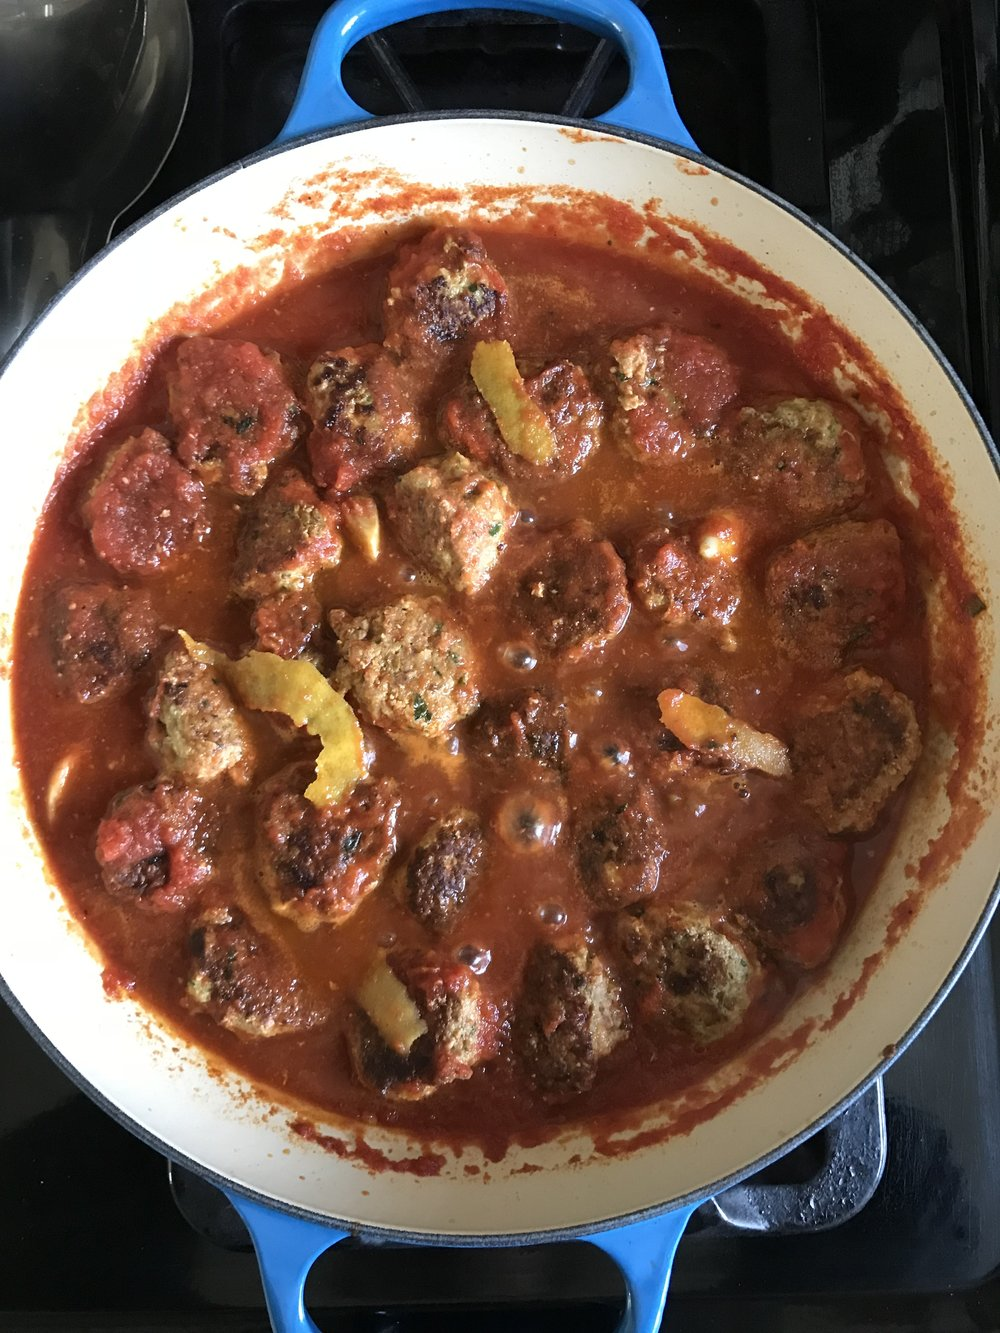 HERE IS WHAT YOU NEED:  - FOR MEATBALLS:2 pounds ground turkey1 teaspoon turmeric1 1/2 teaspoons ground coriander1/2 teaspoon ground aniseed1 teaspoon aleppo pepper (or to taste)1 teaspoon ground cinnamon1/2 teaspoon sumac1 teaspoon smoked sweet paprika1 1/2 teaspoon salt1 1/2 teaspoon black pepper3 garlic cloves (grated on microplane)1 cup loosely packed parsley, chopped finely3 scallions, chopped finely (green and white parts)2 eggs2 slices of day old bread, cut into small cubes1/2 cup of milk (to soak the bread in)FOR SAUCE:2 tablespoons olive oil2 garlic cloves, crushed1 teaspoon smoked paprika1 teaspoon aleppo pepper (or to taste)1 small onion, diced small2 cups crushed tomatoes1 to 2 cups chicken stock peel from 1 lemon (peeled with a peeler)salt pepperFOR YOGURT SAUCE:1/2 cup plain yogurt1/2 cup sour cream1 tablespoon lemon juice1 teaspoon sumacsmall garlic clove, minced finely or grated on microplane saltpepper